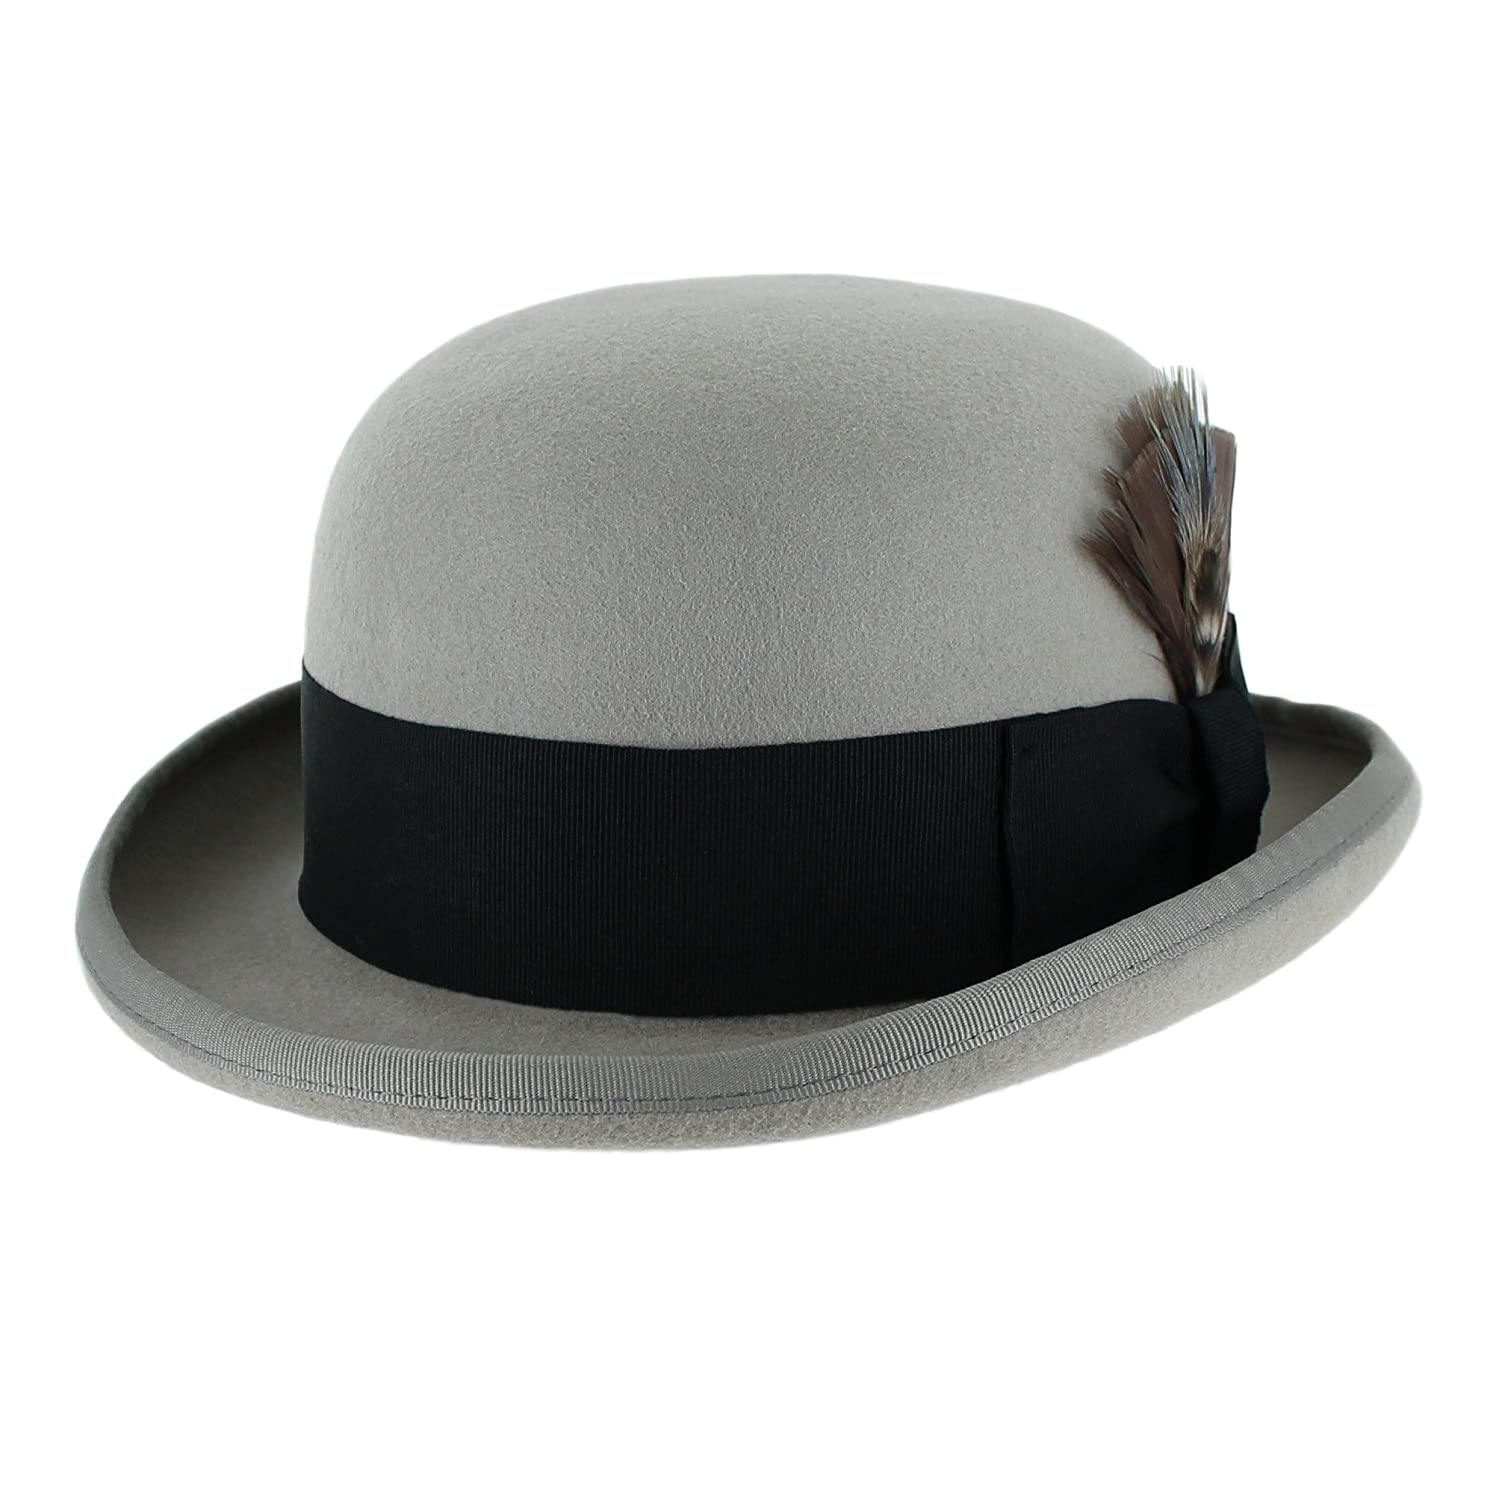 Steampunk Hats | Top Hats | Bowler Belfry Bowler Derby 100% Pure Wool Theater Quality Hat in Black Brown Grey Navy Pearl Green $39.95 AT vintagedancer.com